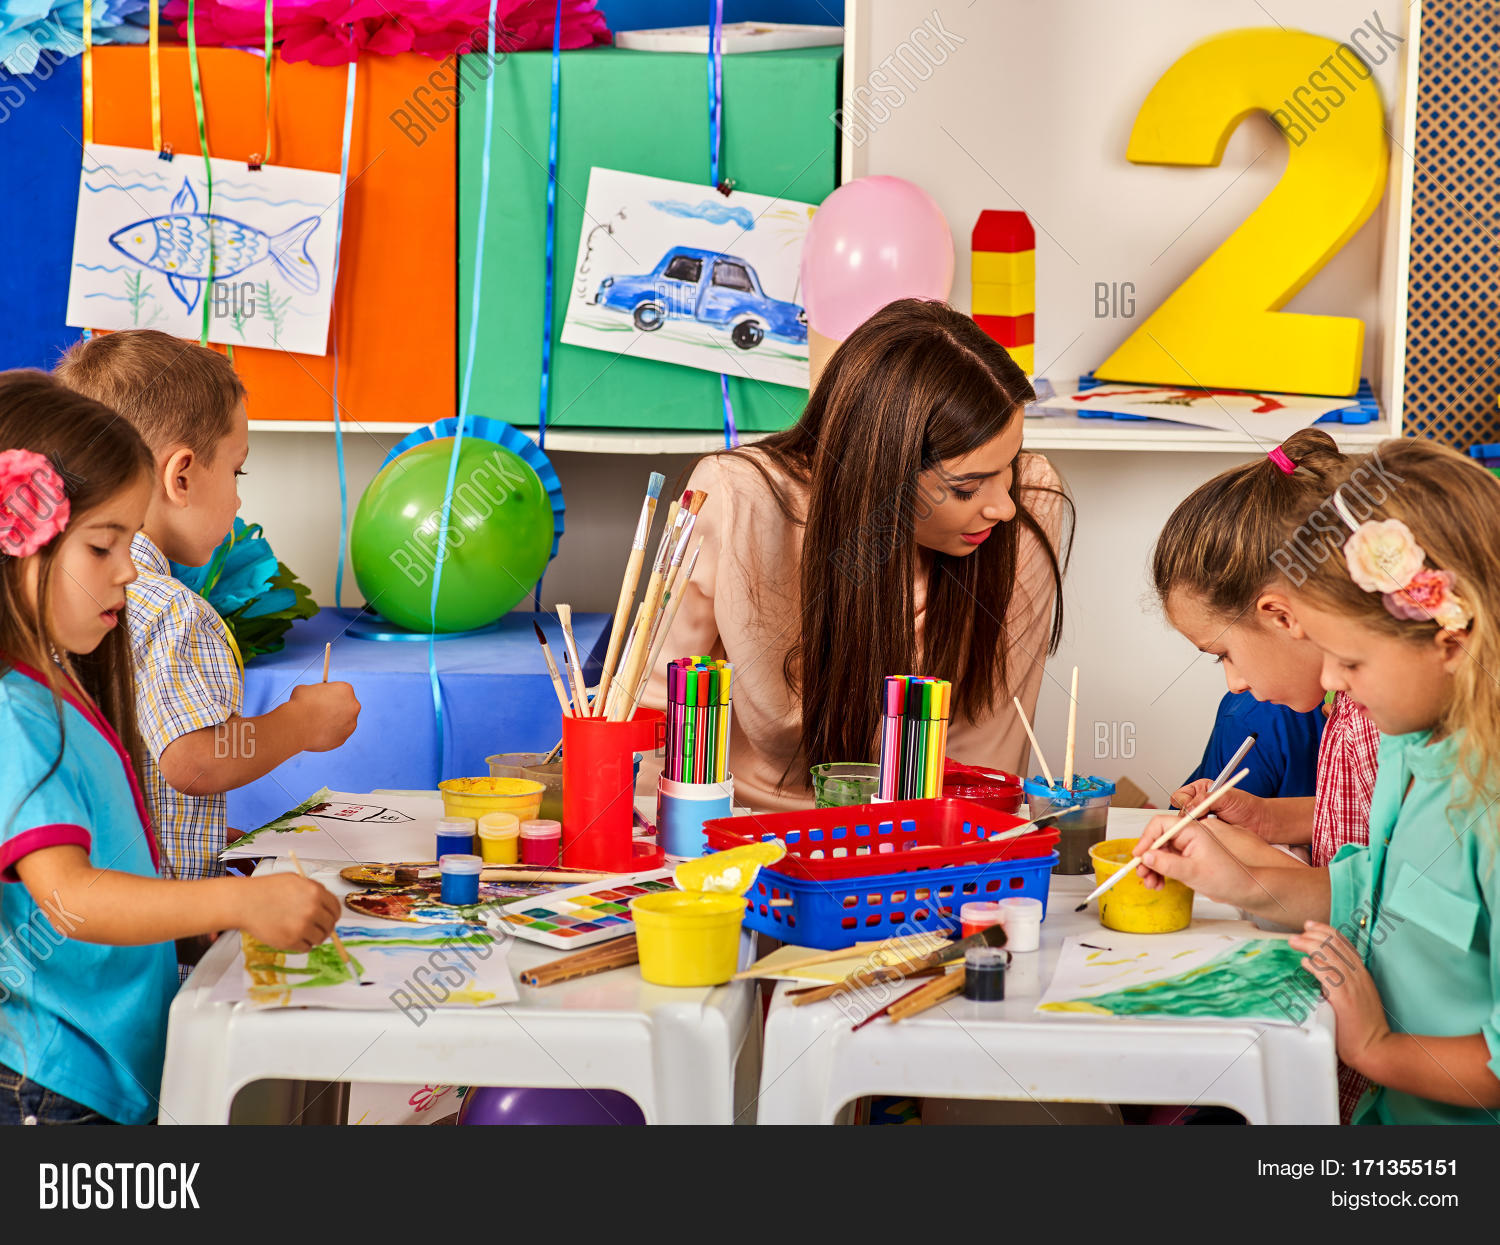 Children painting drawing kids club image photo bigstock for Teaching kids to paint on canvas